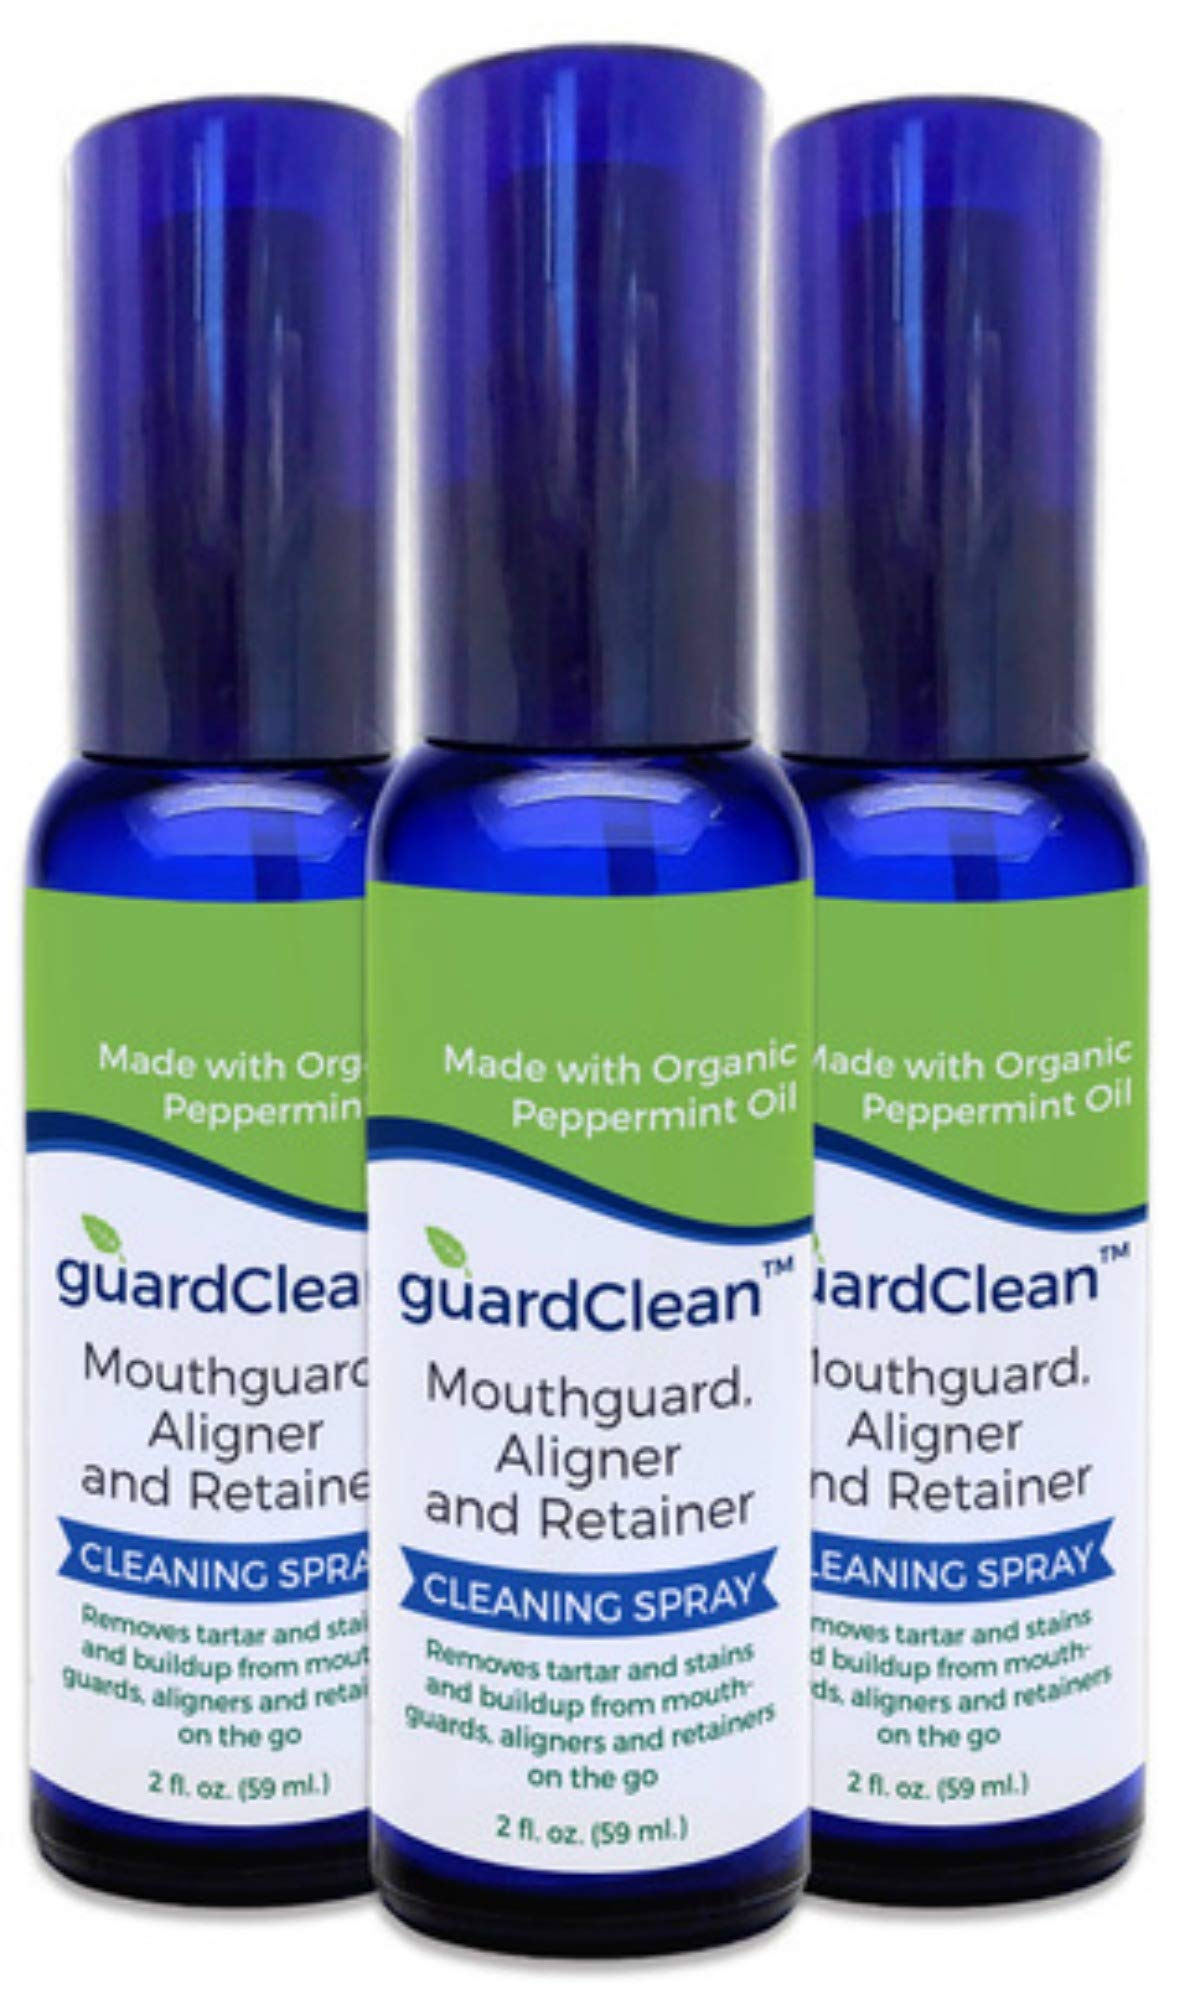 GuardClean Mouthguard, Aligner and Retainer Cleaning Spray Fights Stains and Tartar, Potent CPAP Cleaner Spray, Handy Travel Size, Works Fast, All Natural Ingredients(3-pack)